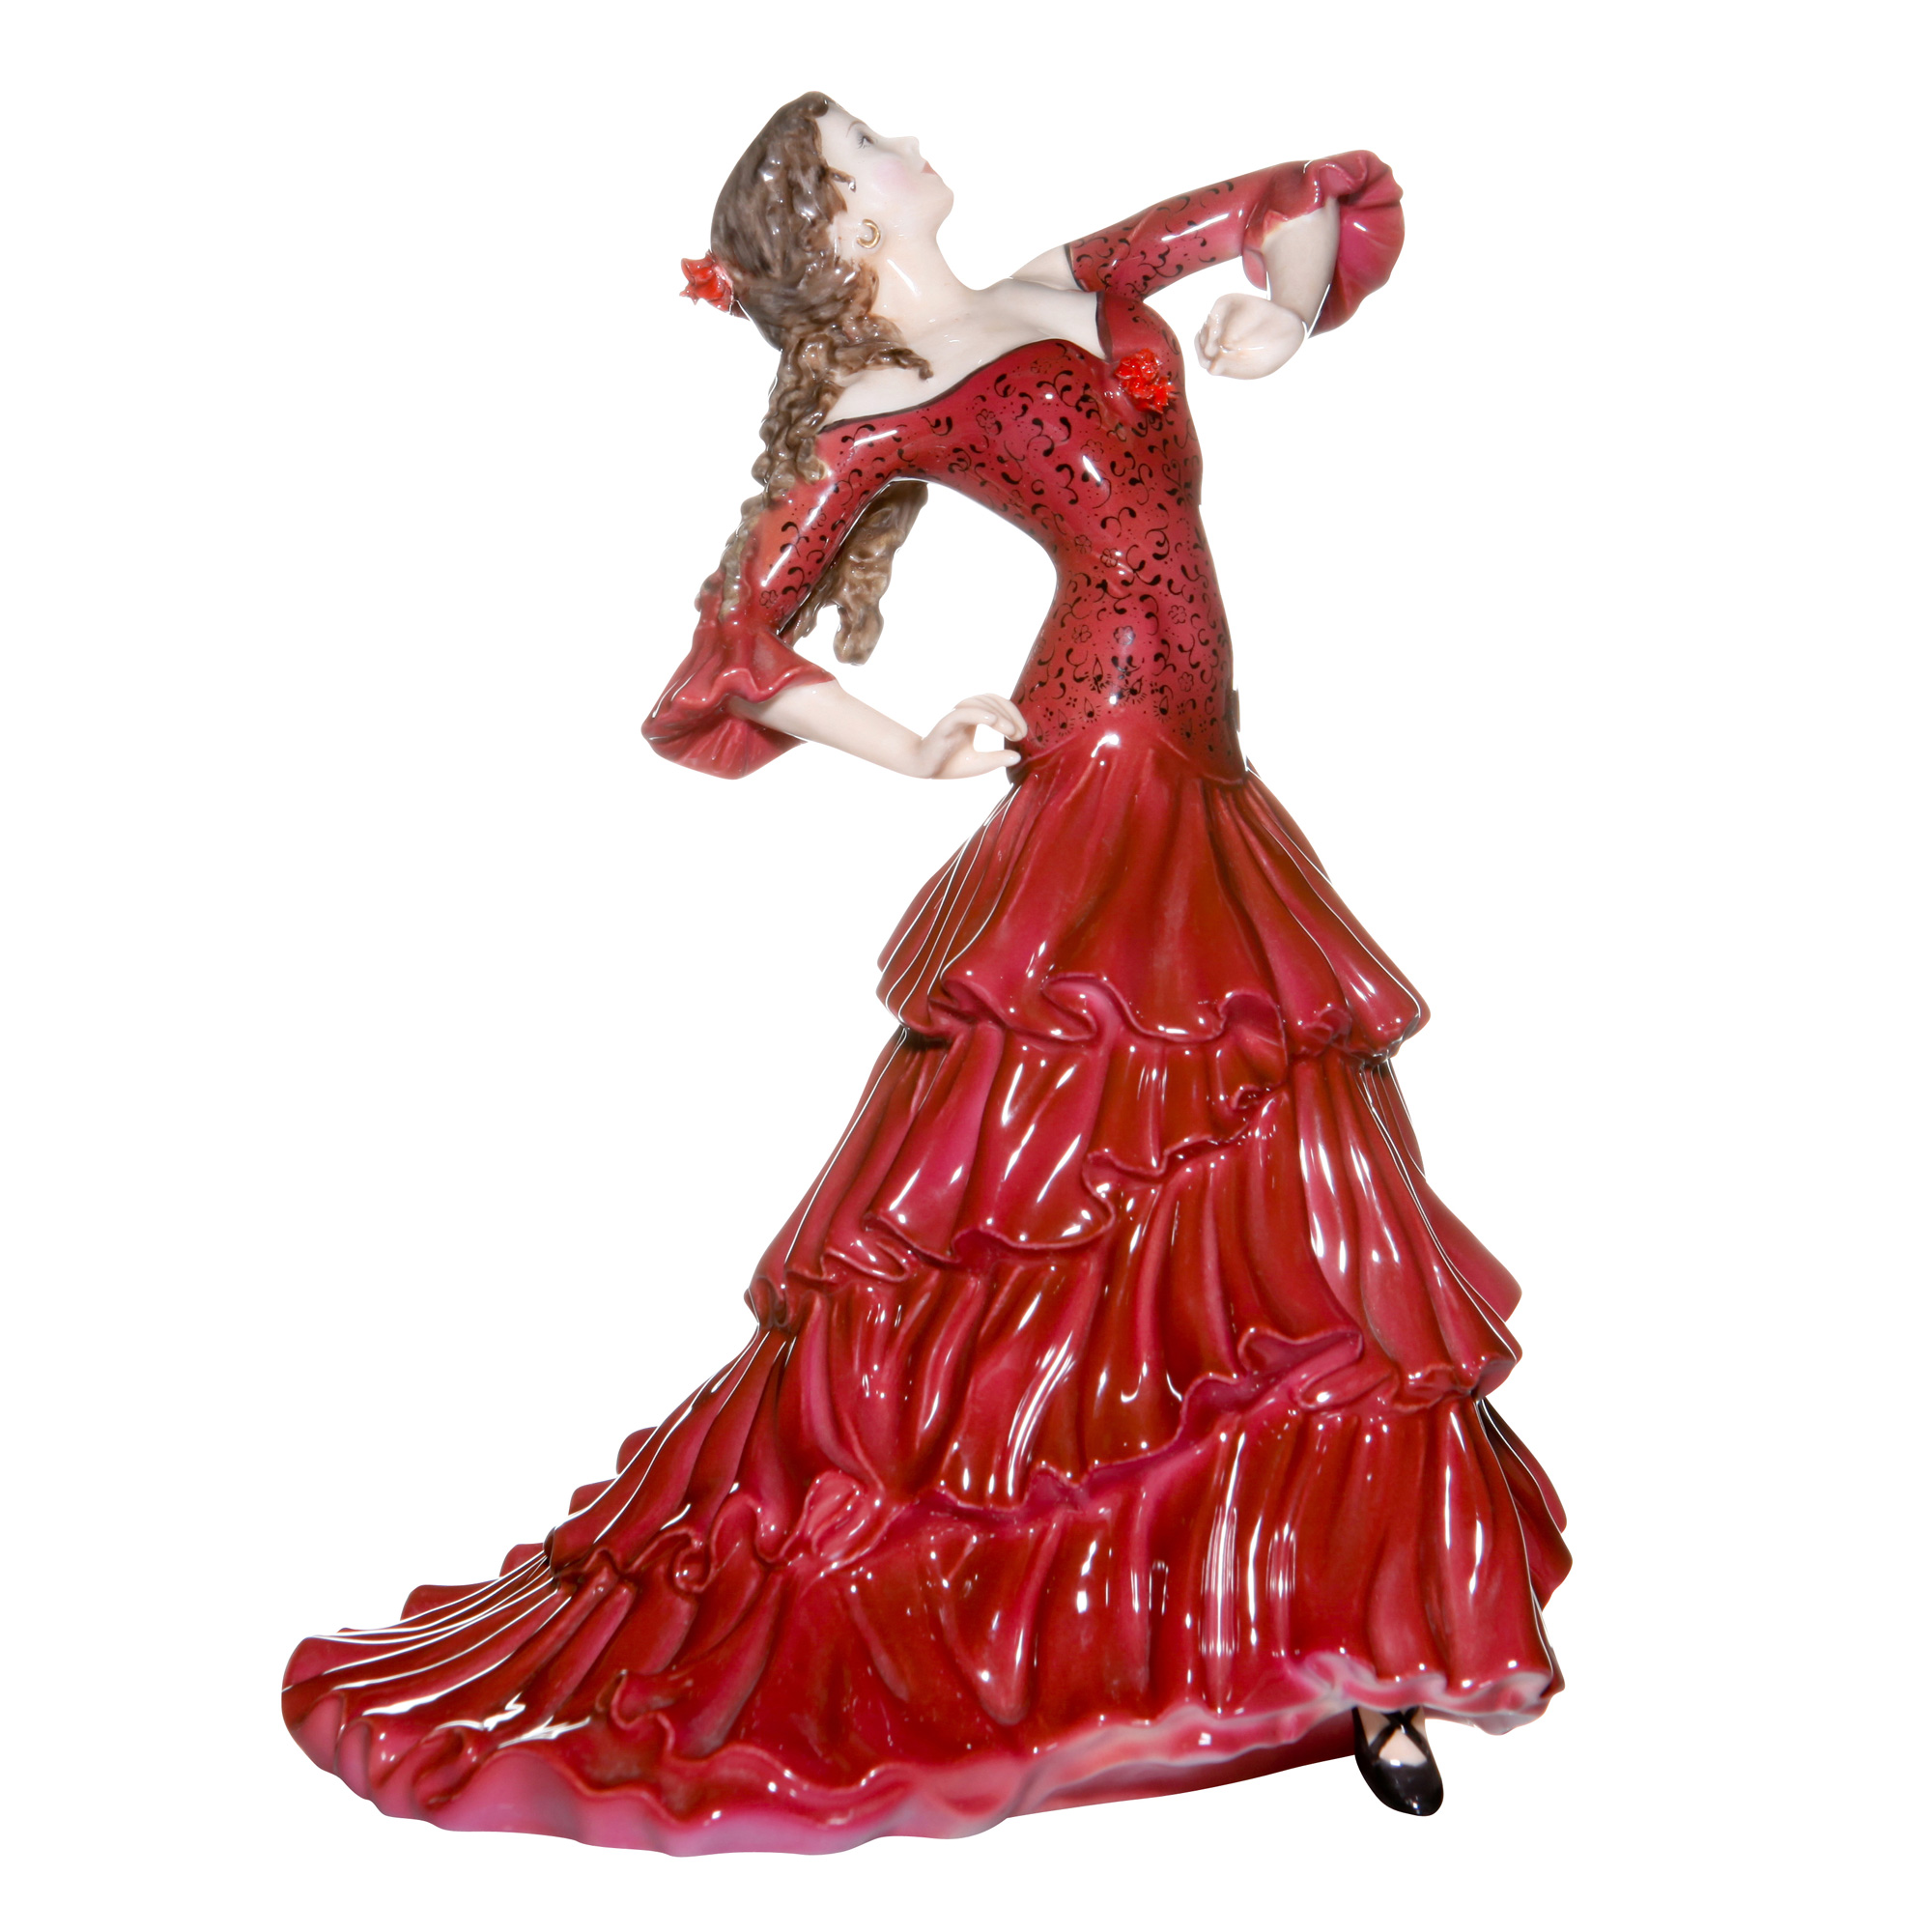 "Bolero ""A Passion For Dance"" - Coalport Figurine"